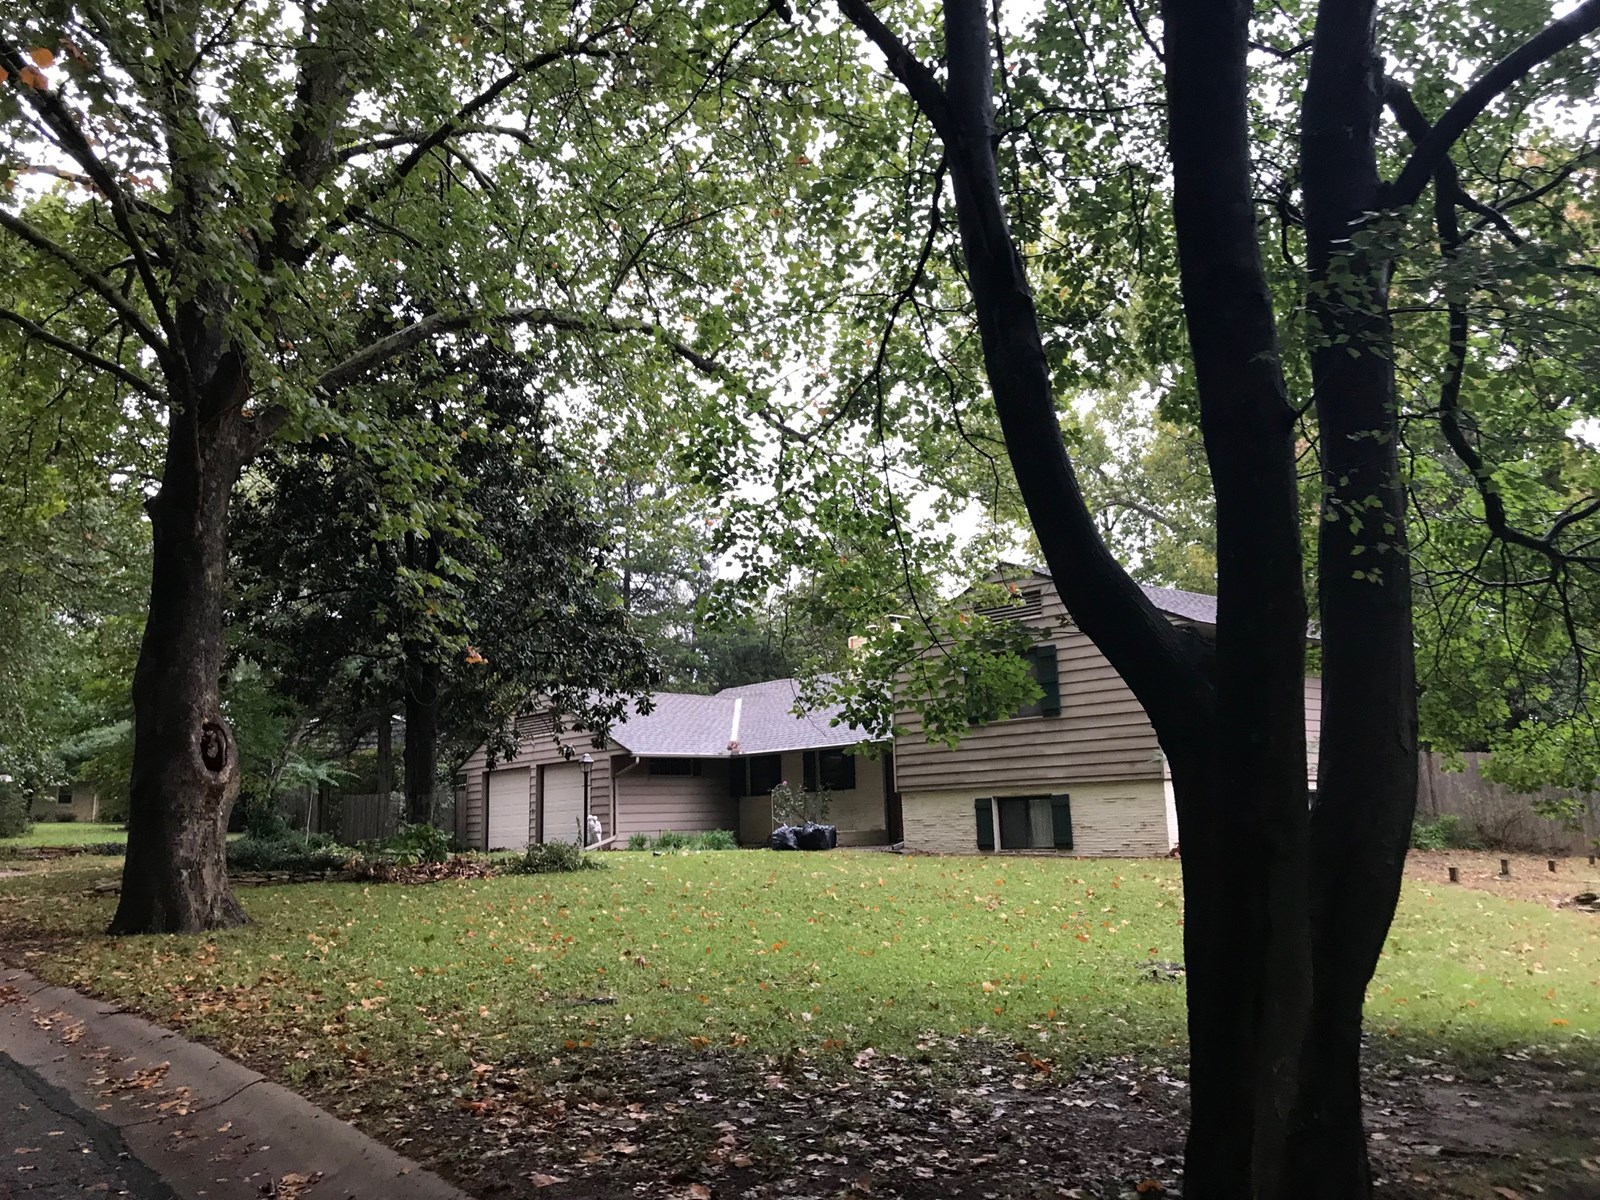 BANK OWNED HOME ON OVER 1/2 ACRE PRICED TO SELL-PONCA CITY